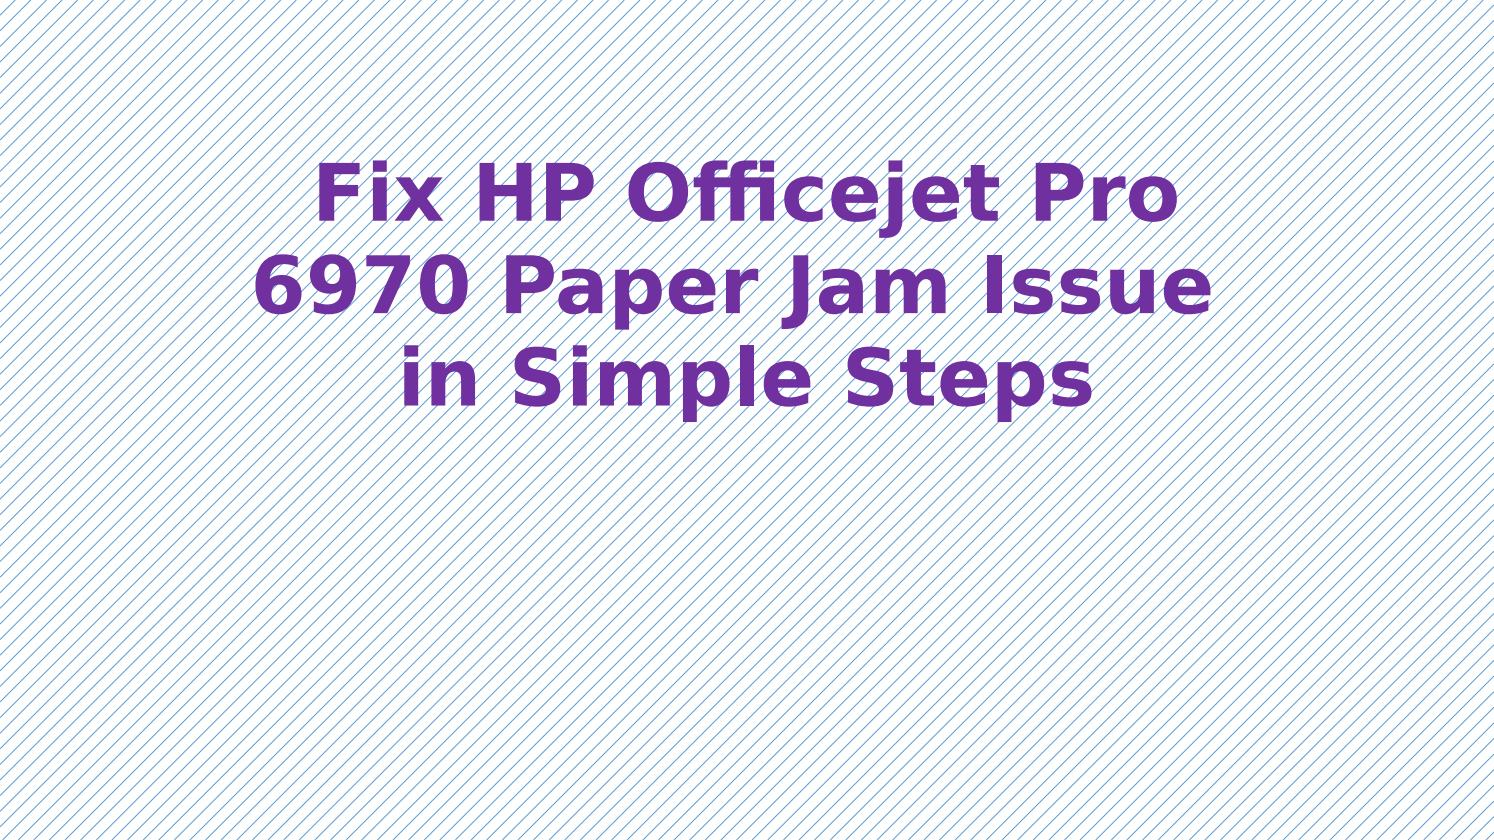 Fix HP Officejet Pro 6970 Paper Jam Issue in Simple Steps by